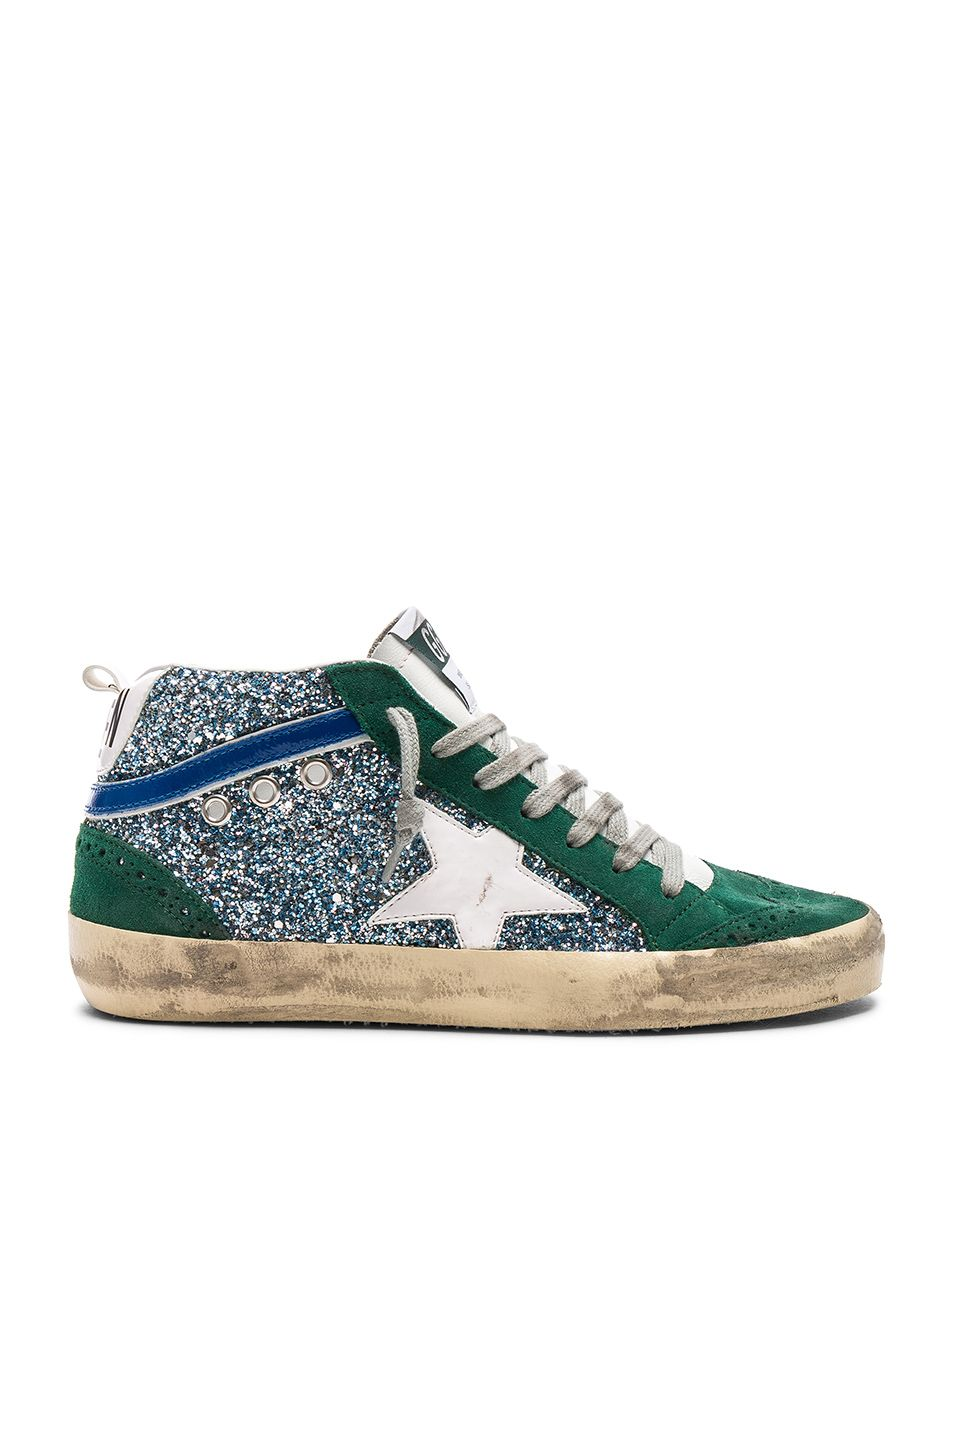 Golden Goose Mid Star Leather, Suede